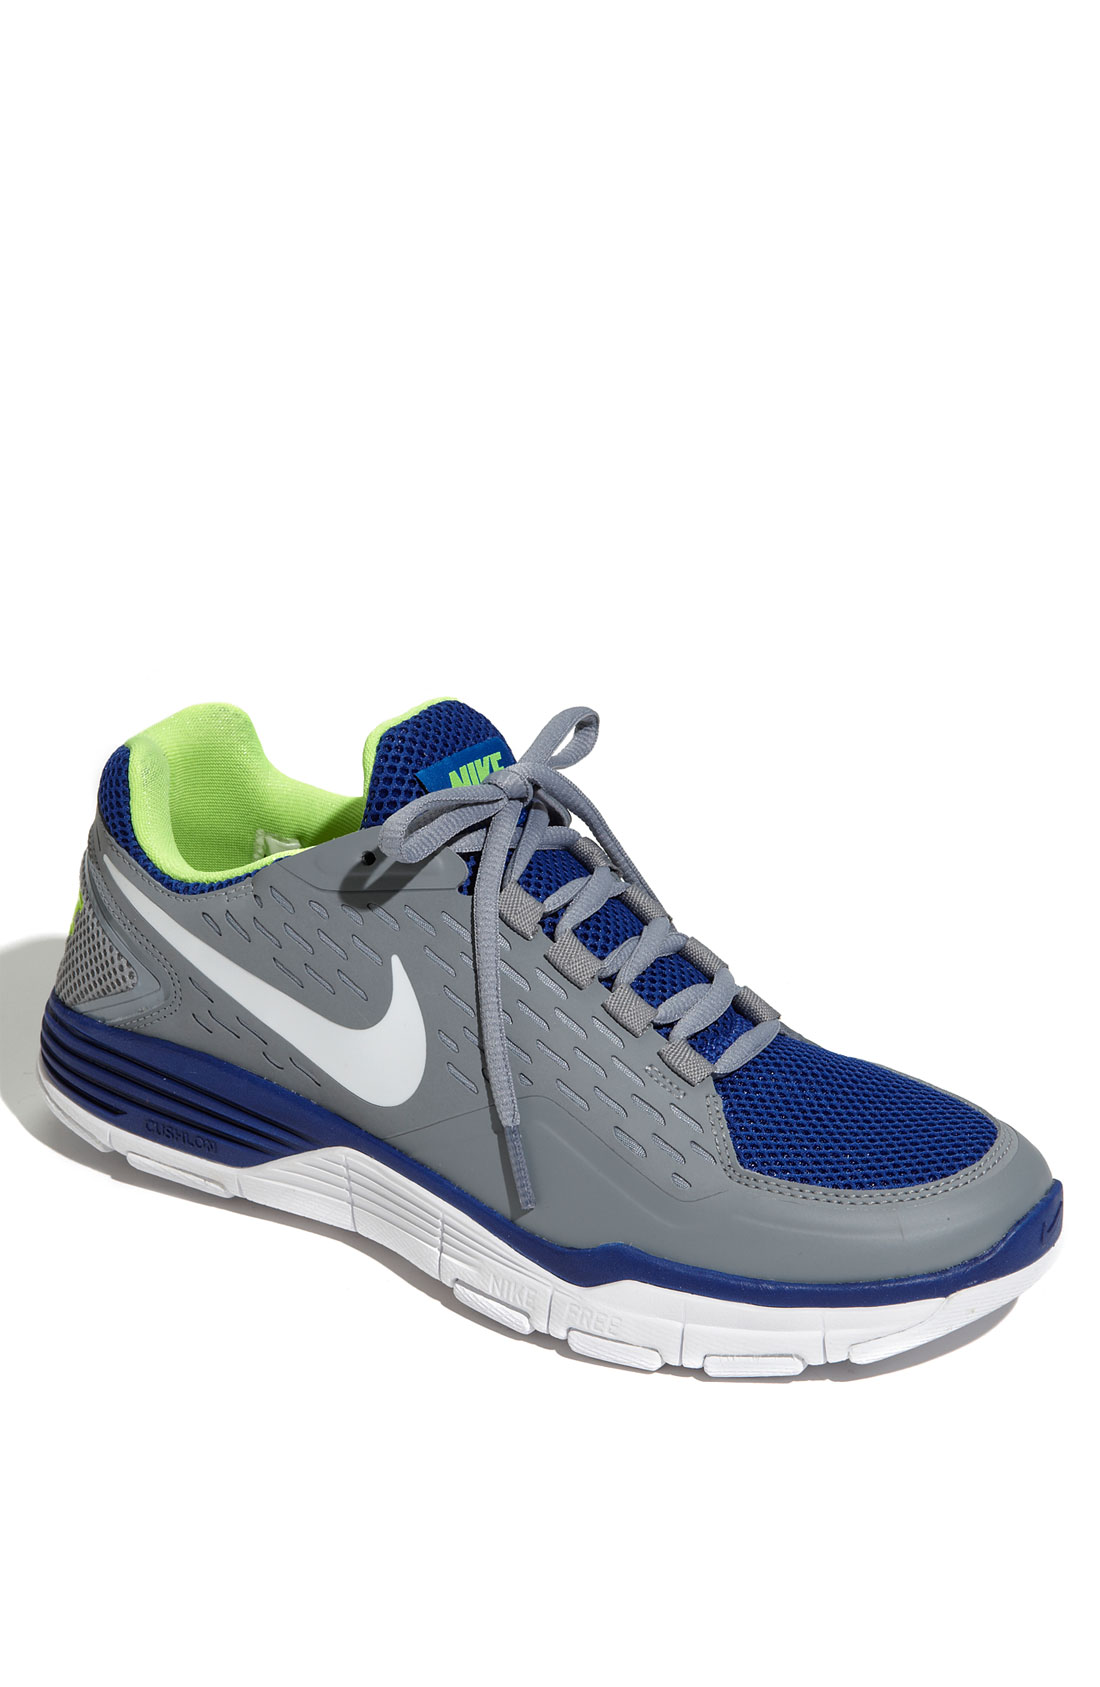 Nike Free Xilla Training Shoe In Blue For Men (stealth/ Blue/ Volt/ White) | Lyst